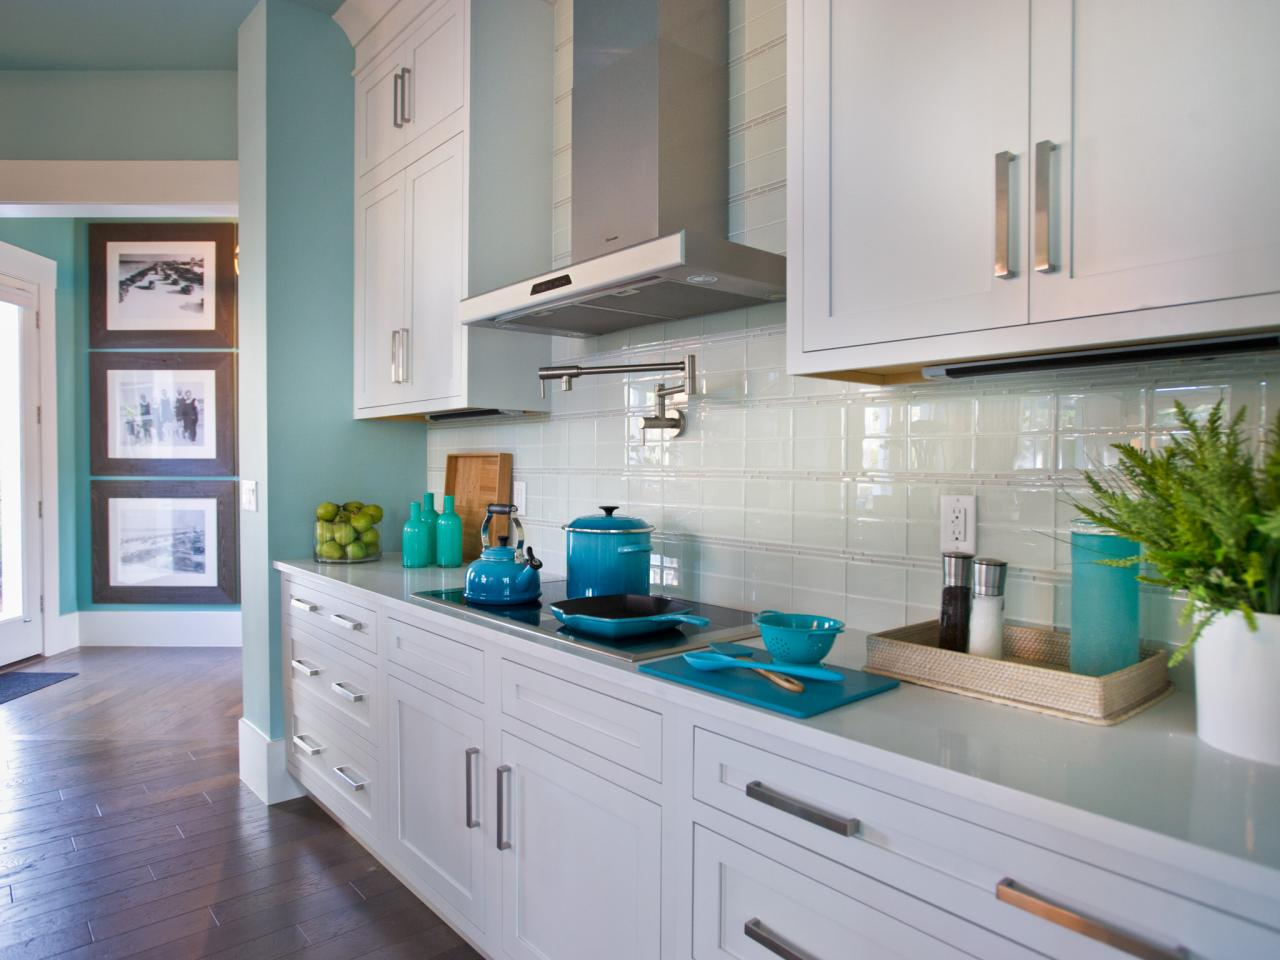 Glass tiles are a modern option that many people are going for. Source: HGTV